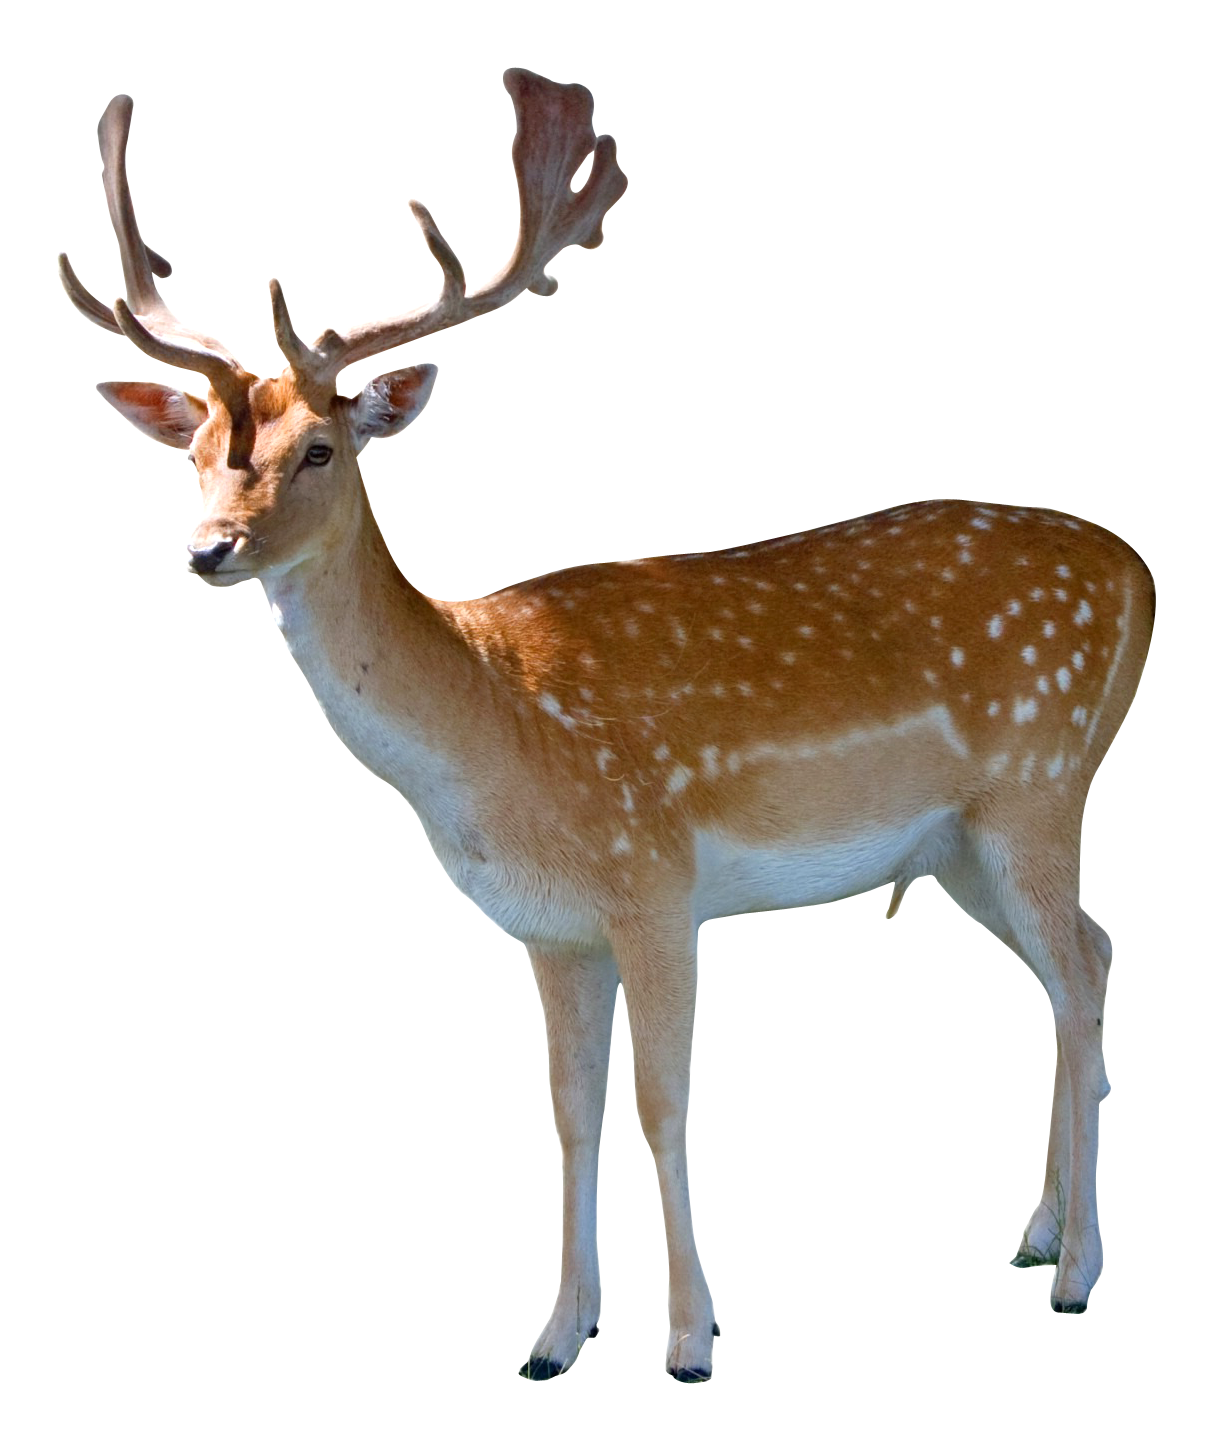 Animal png. Image pngpix com deer